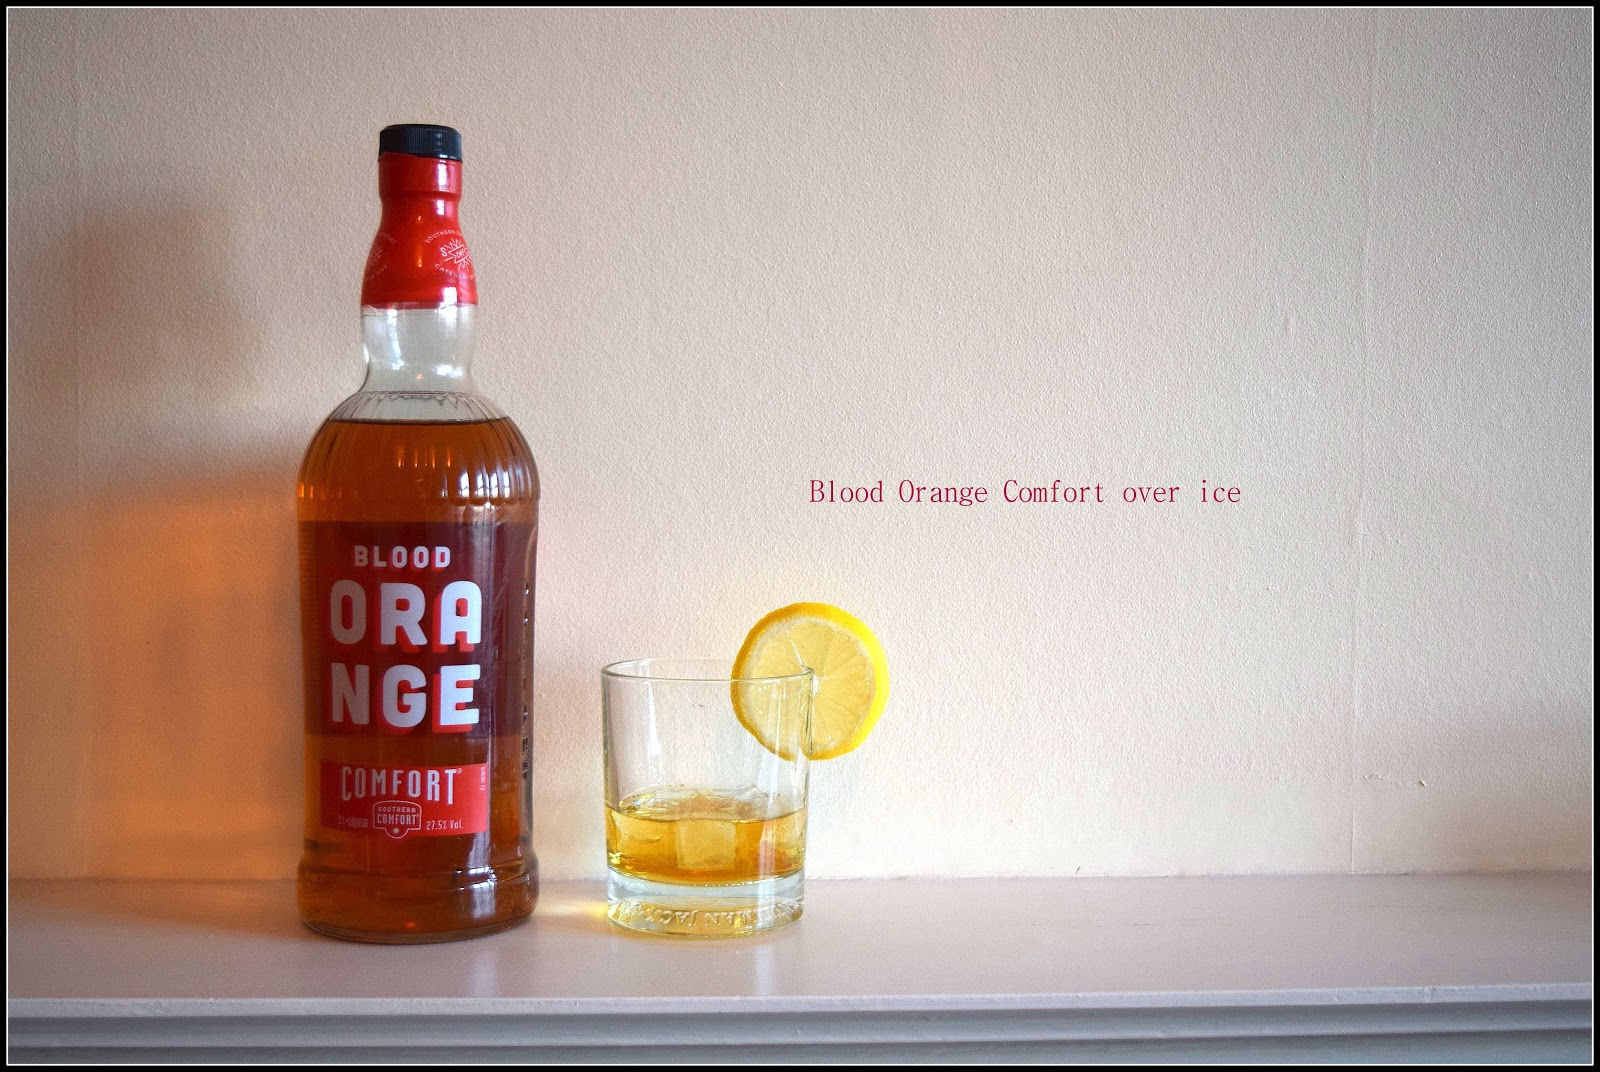 Southern Comfort launches Blood Orange